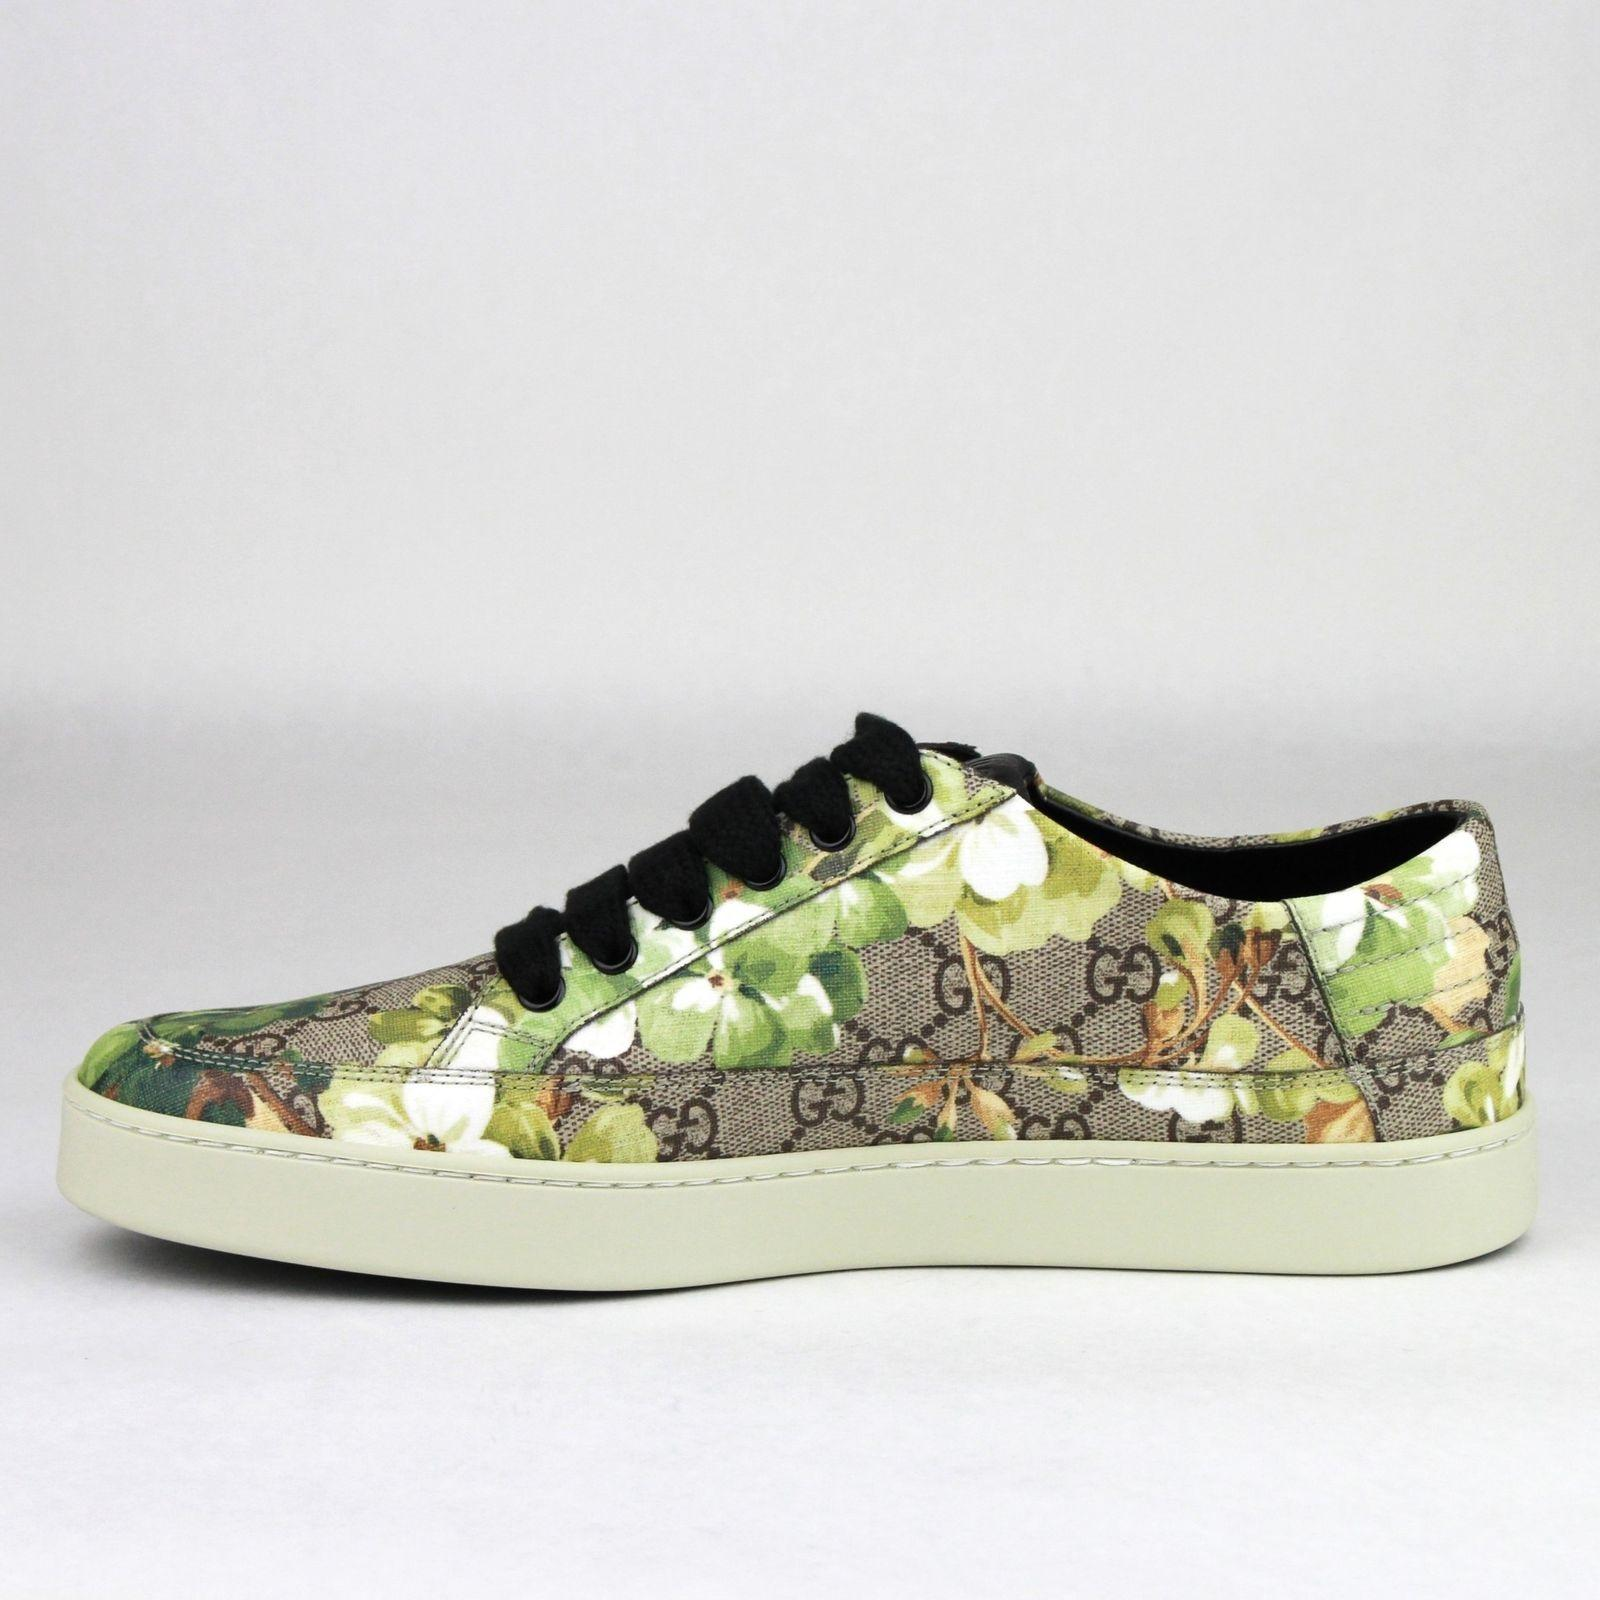 c9b0e82f0159 Gucci Green Men s Bloom Print Flower Sneaker 10G us 11 407343 8960